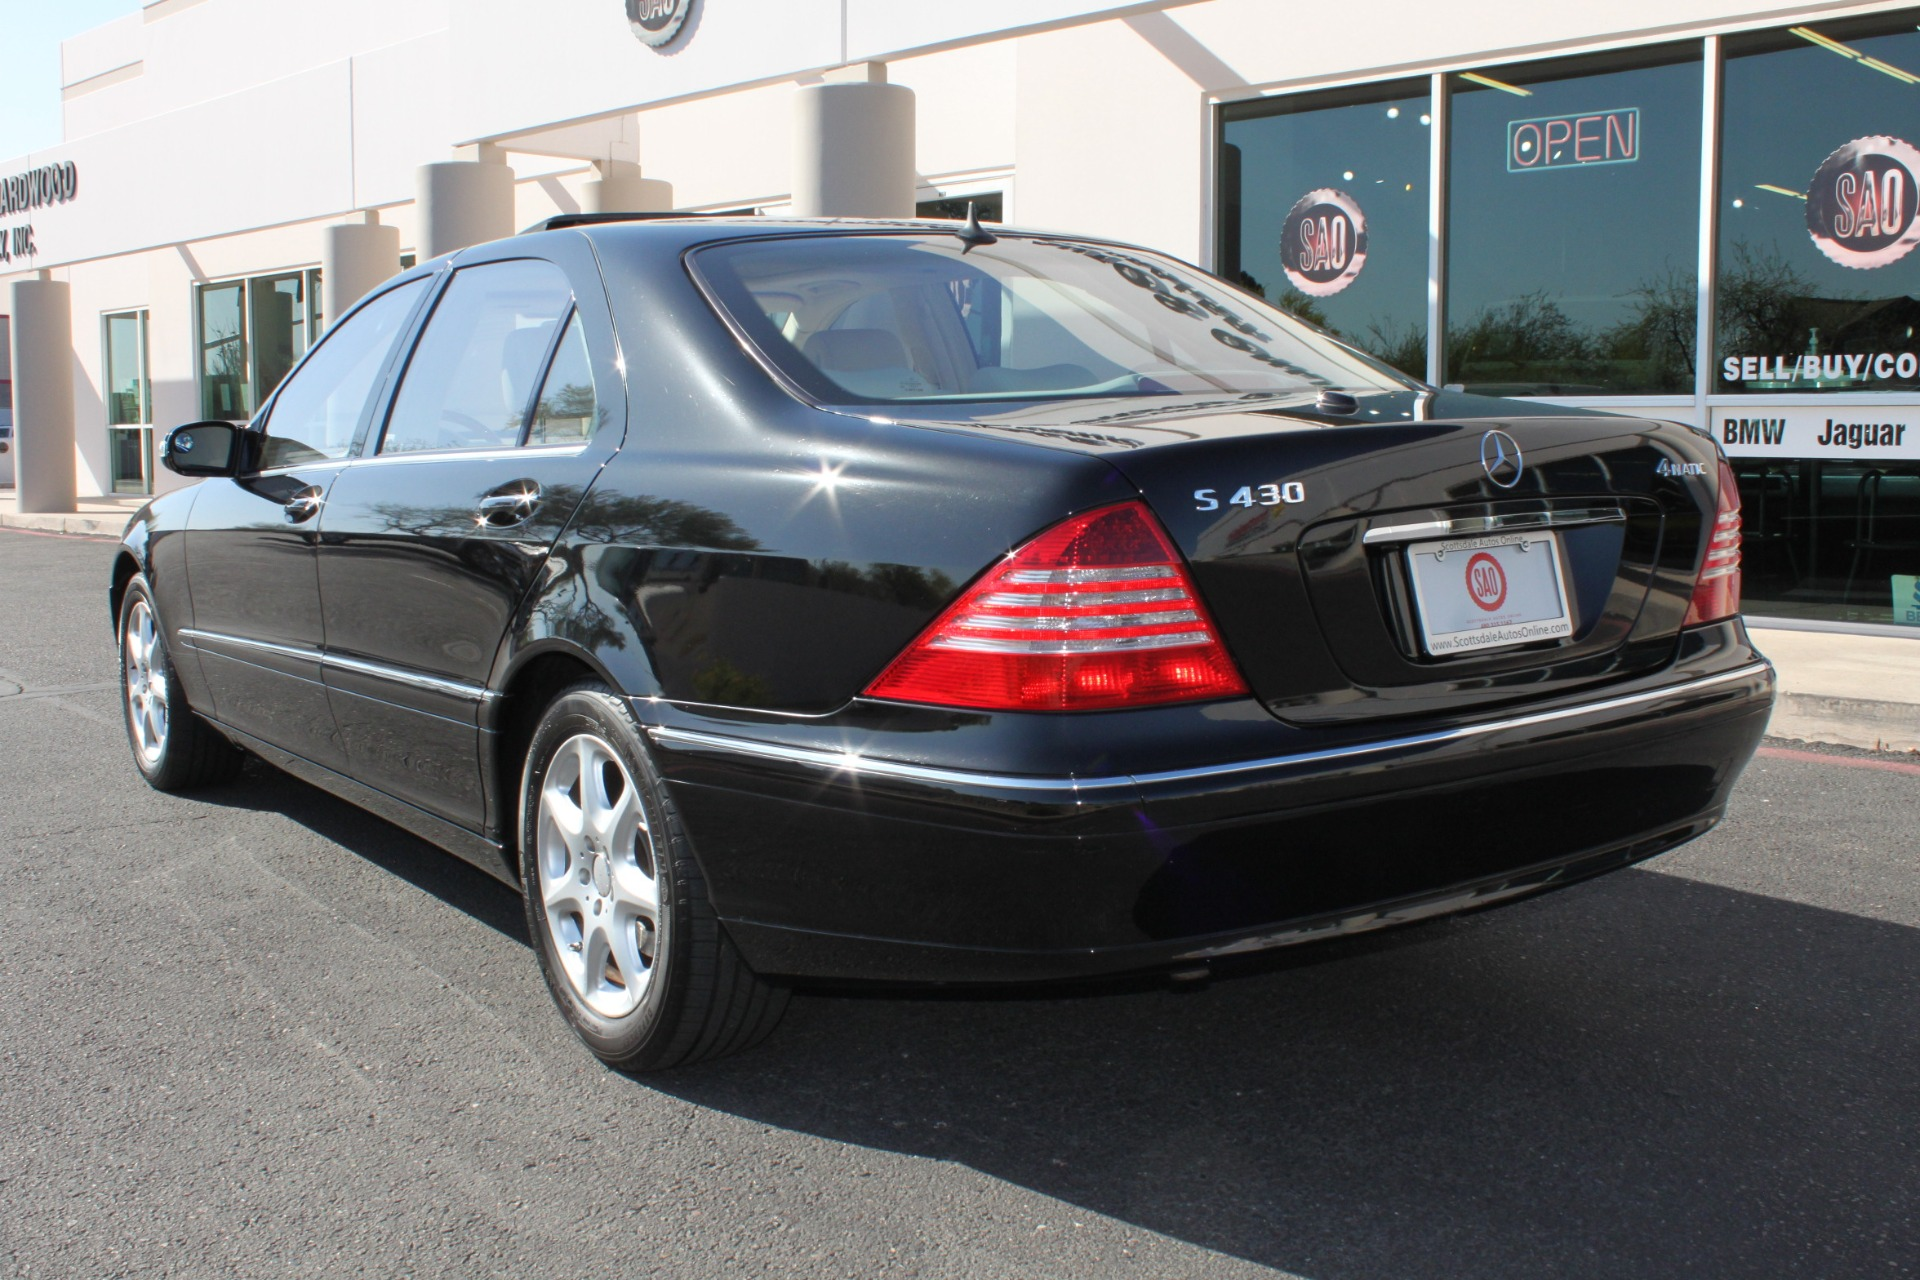 Used-2006-Mercedes-Benz-S-Class-43L-Grand-Wagoneer